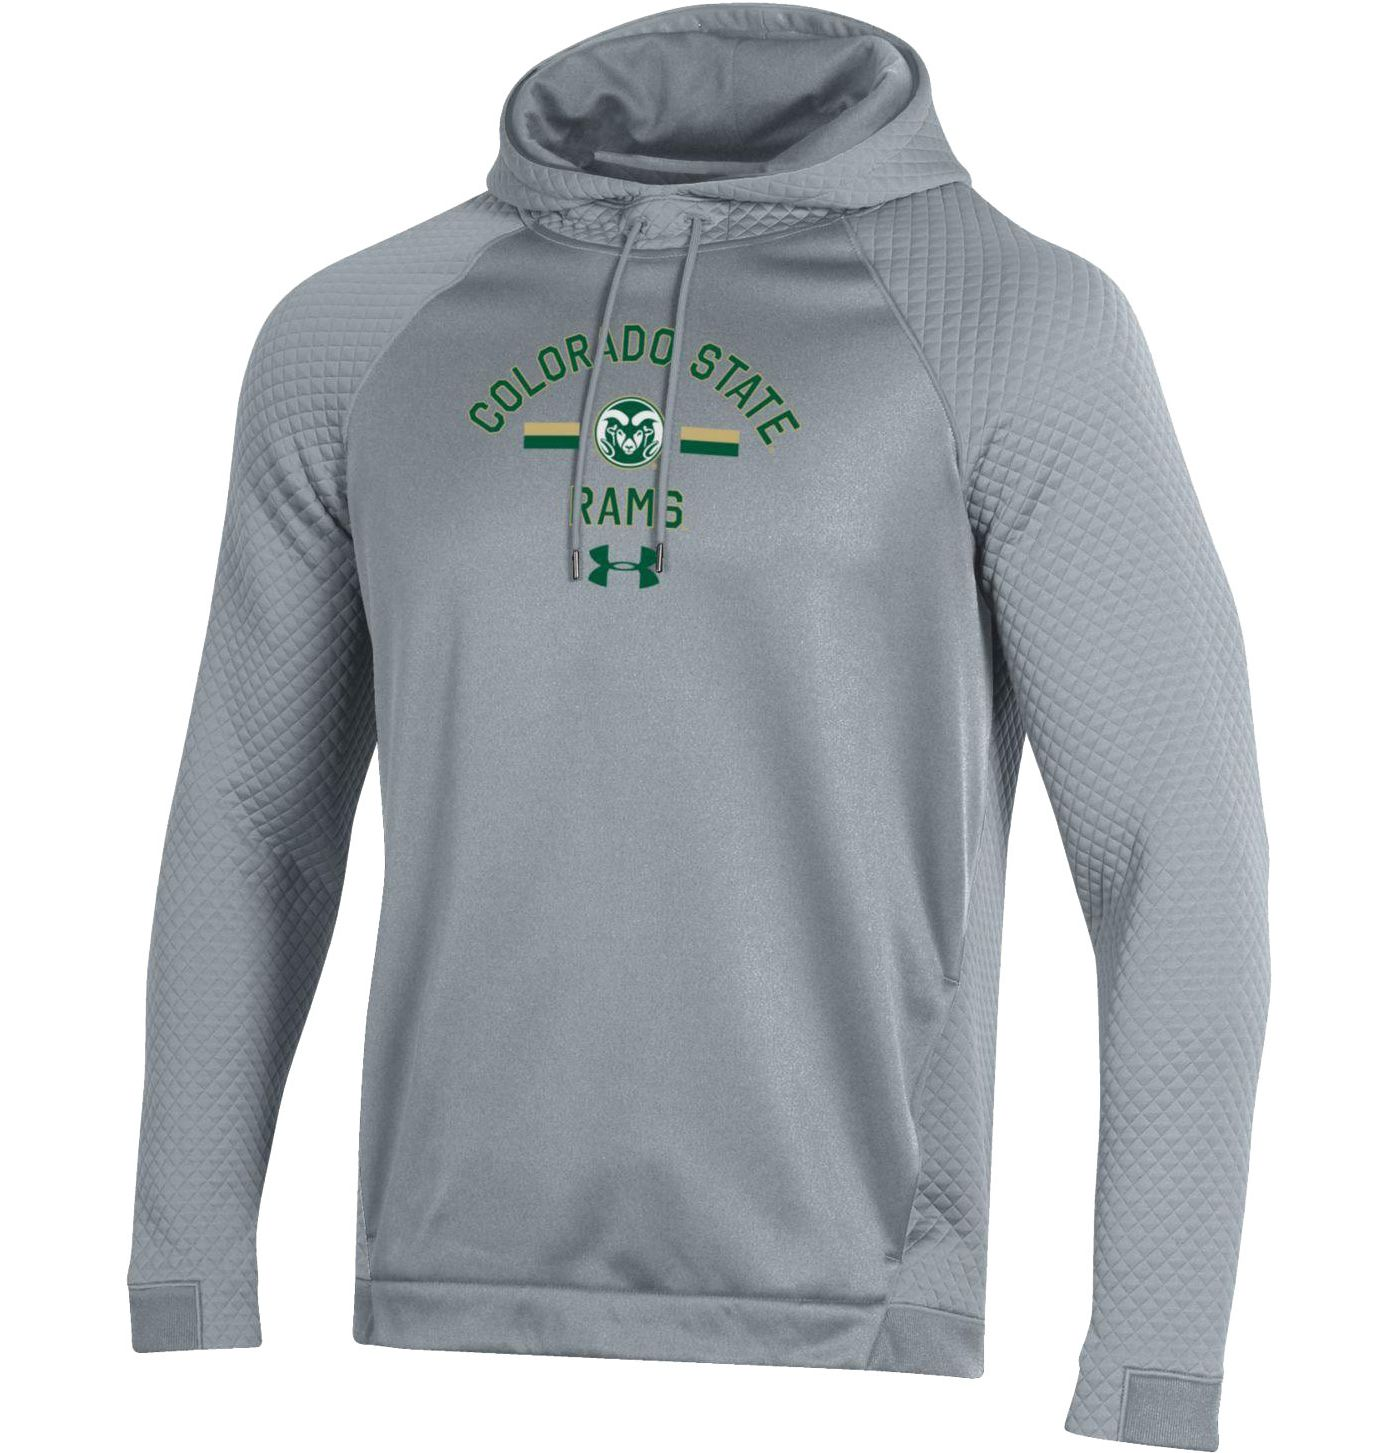 Under Armour Men's Colorado State Rams Grey HD Pullover Hoodie